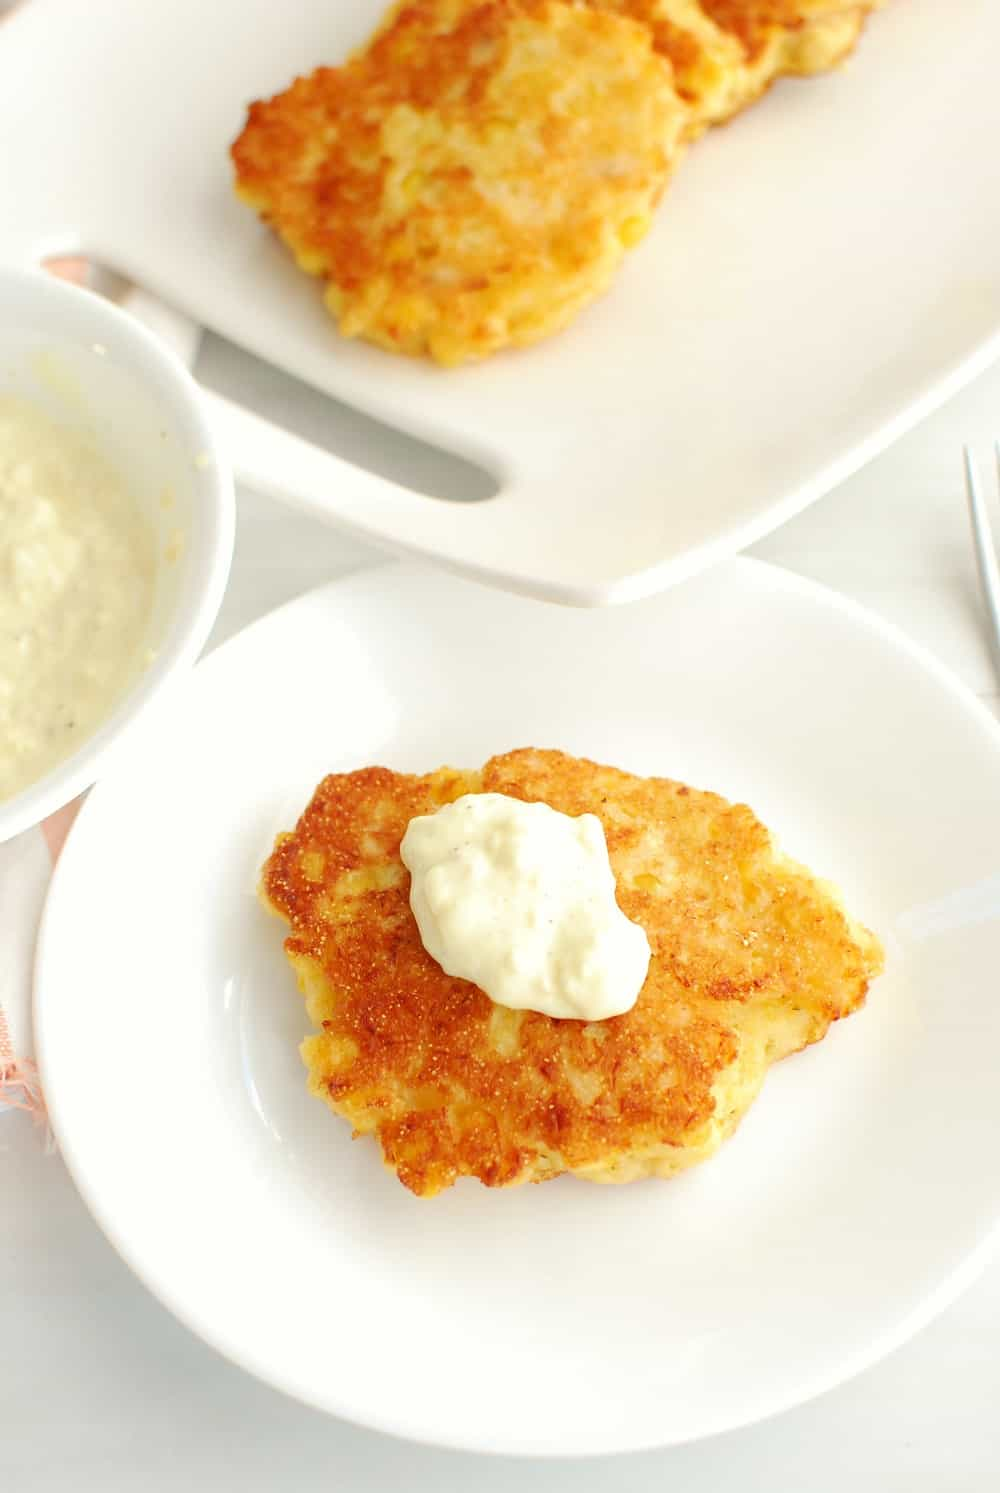 a salmon corn fritter on a white plate with a dollop of garlic mayo aioli